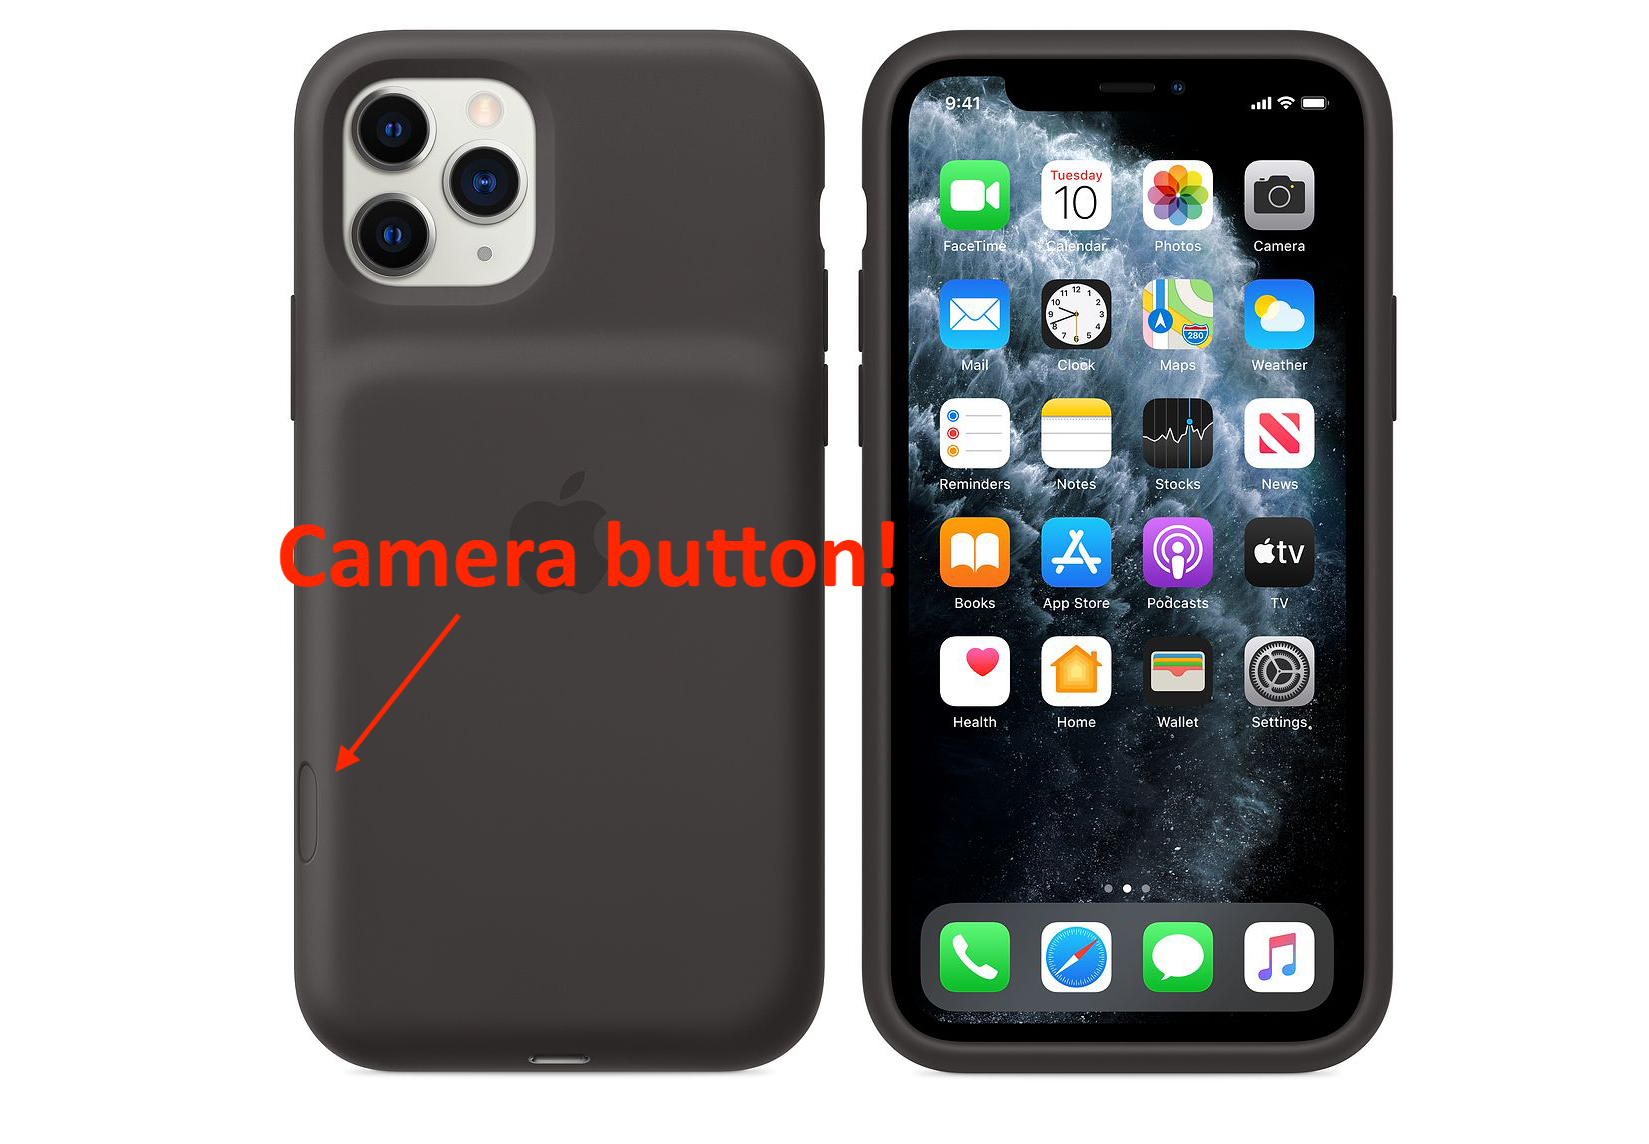 Apple Launches iPhone 11 'Smart' Battery Cases With Physical Camera Button